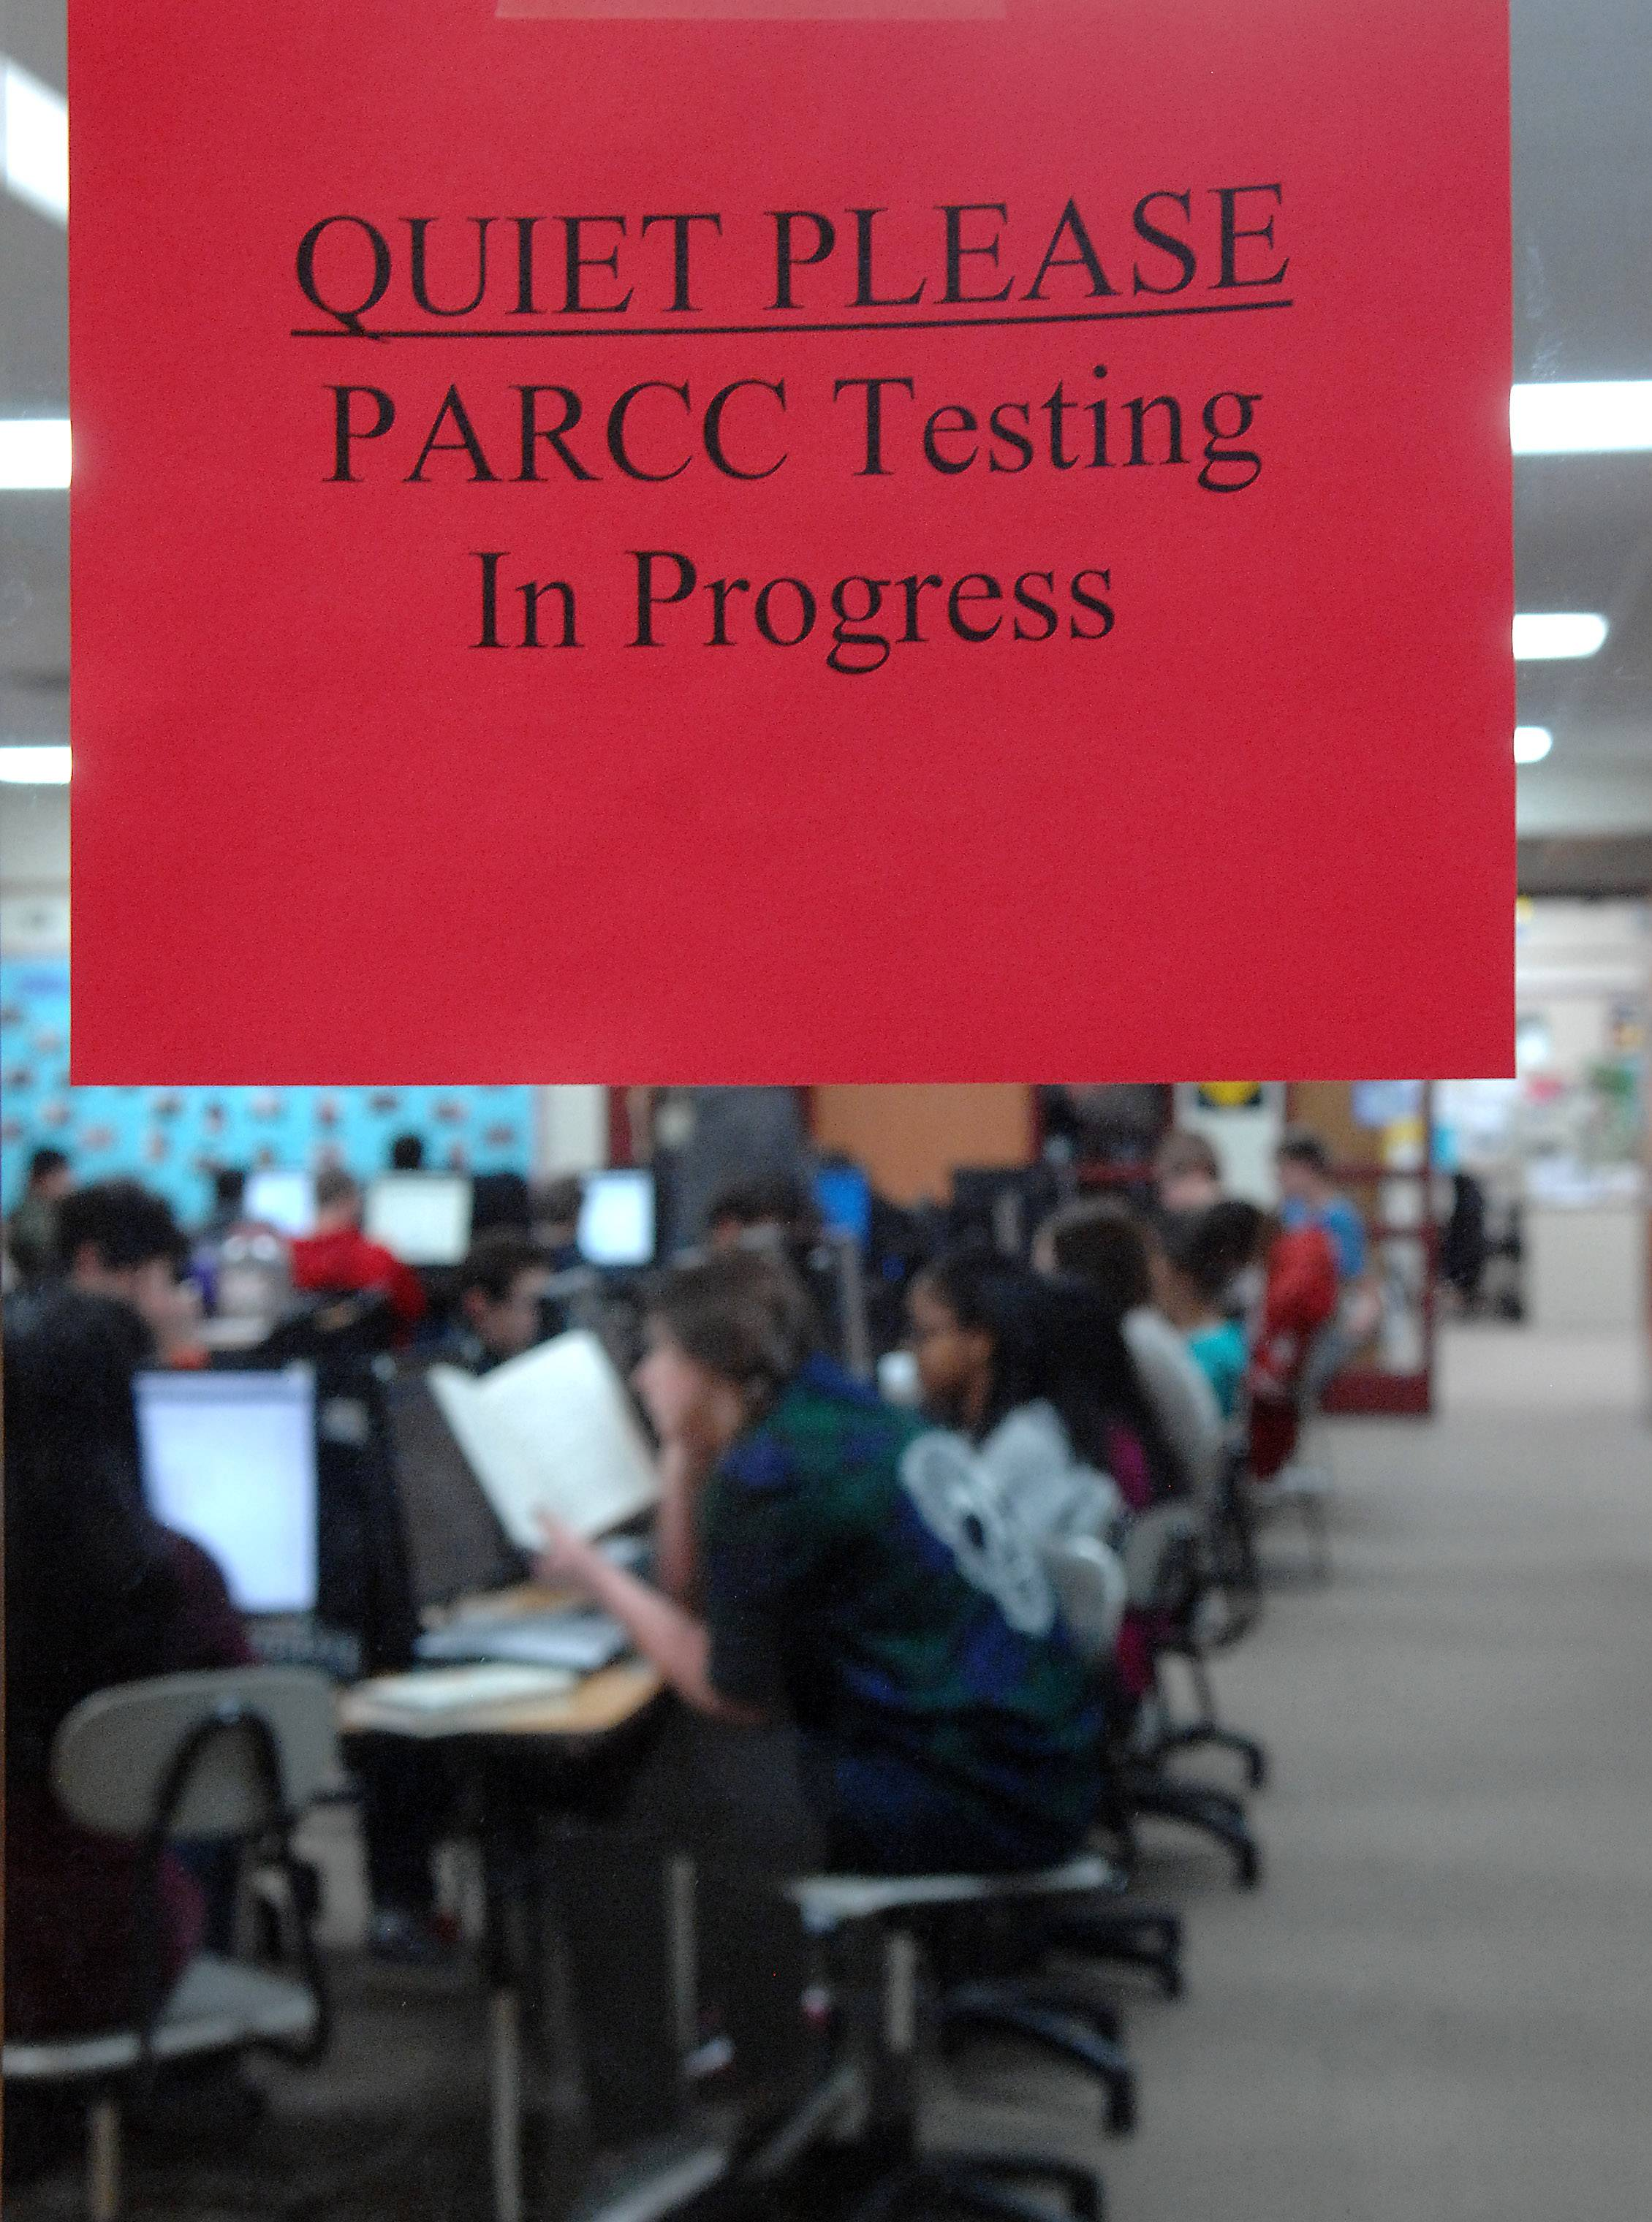 Students at Marlowe Middle School in Lake in the Hills took the state's new standardized test, PARCC, earlier this month. A few suburban districts, including Northwest Suburban High School District 214, are reporting some students refusing to take the test. At District 214, juniors are taking the PARCC tests this week.